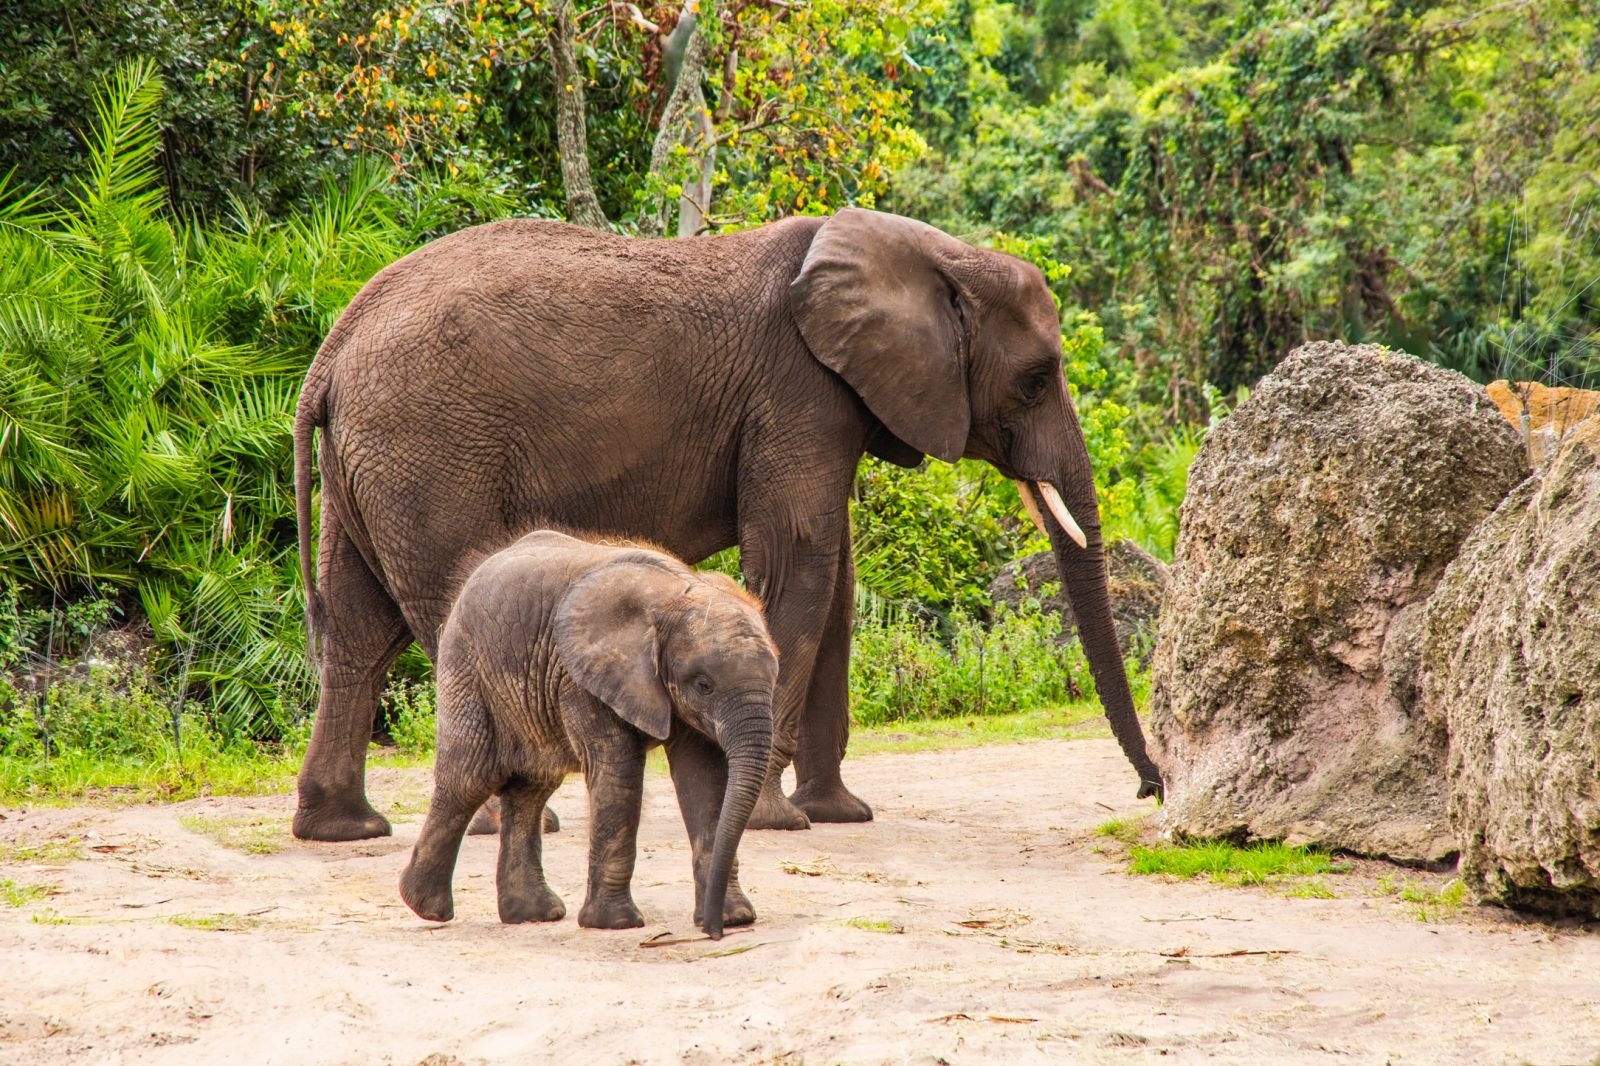 Elephants up close – mother and young